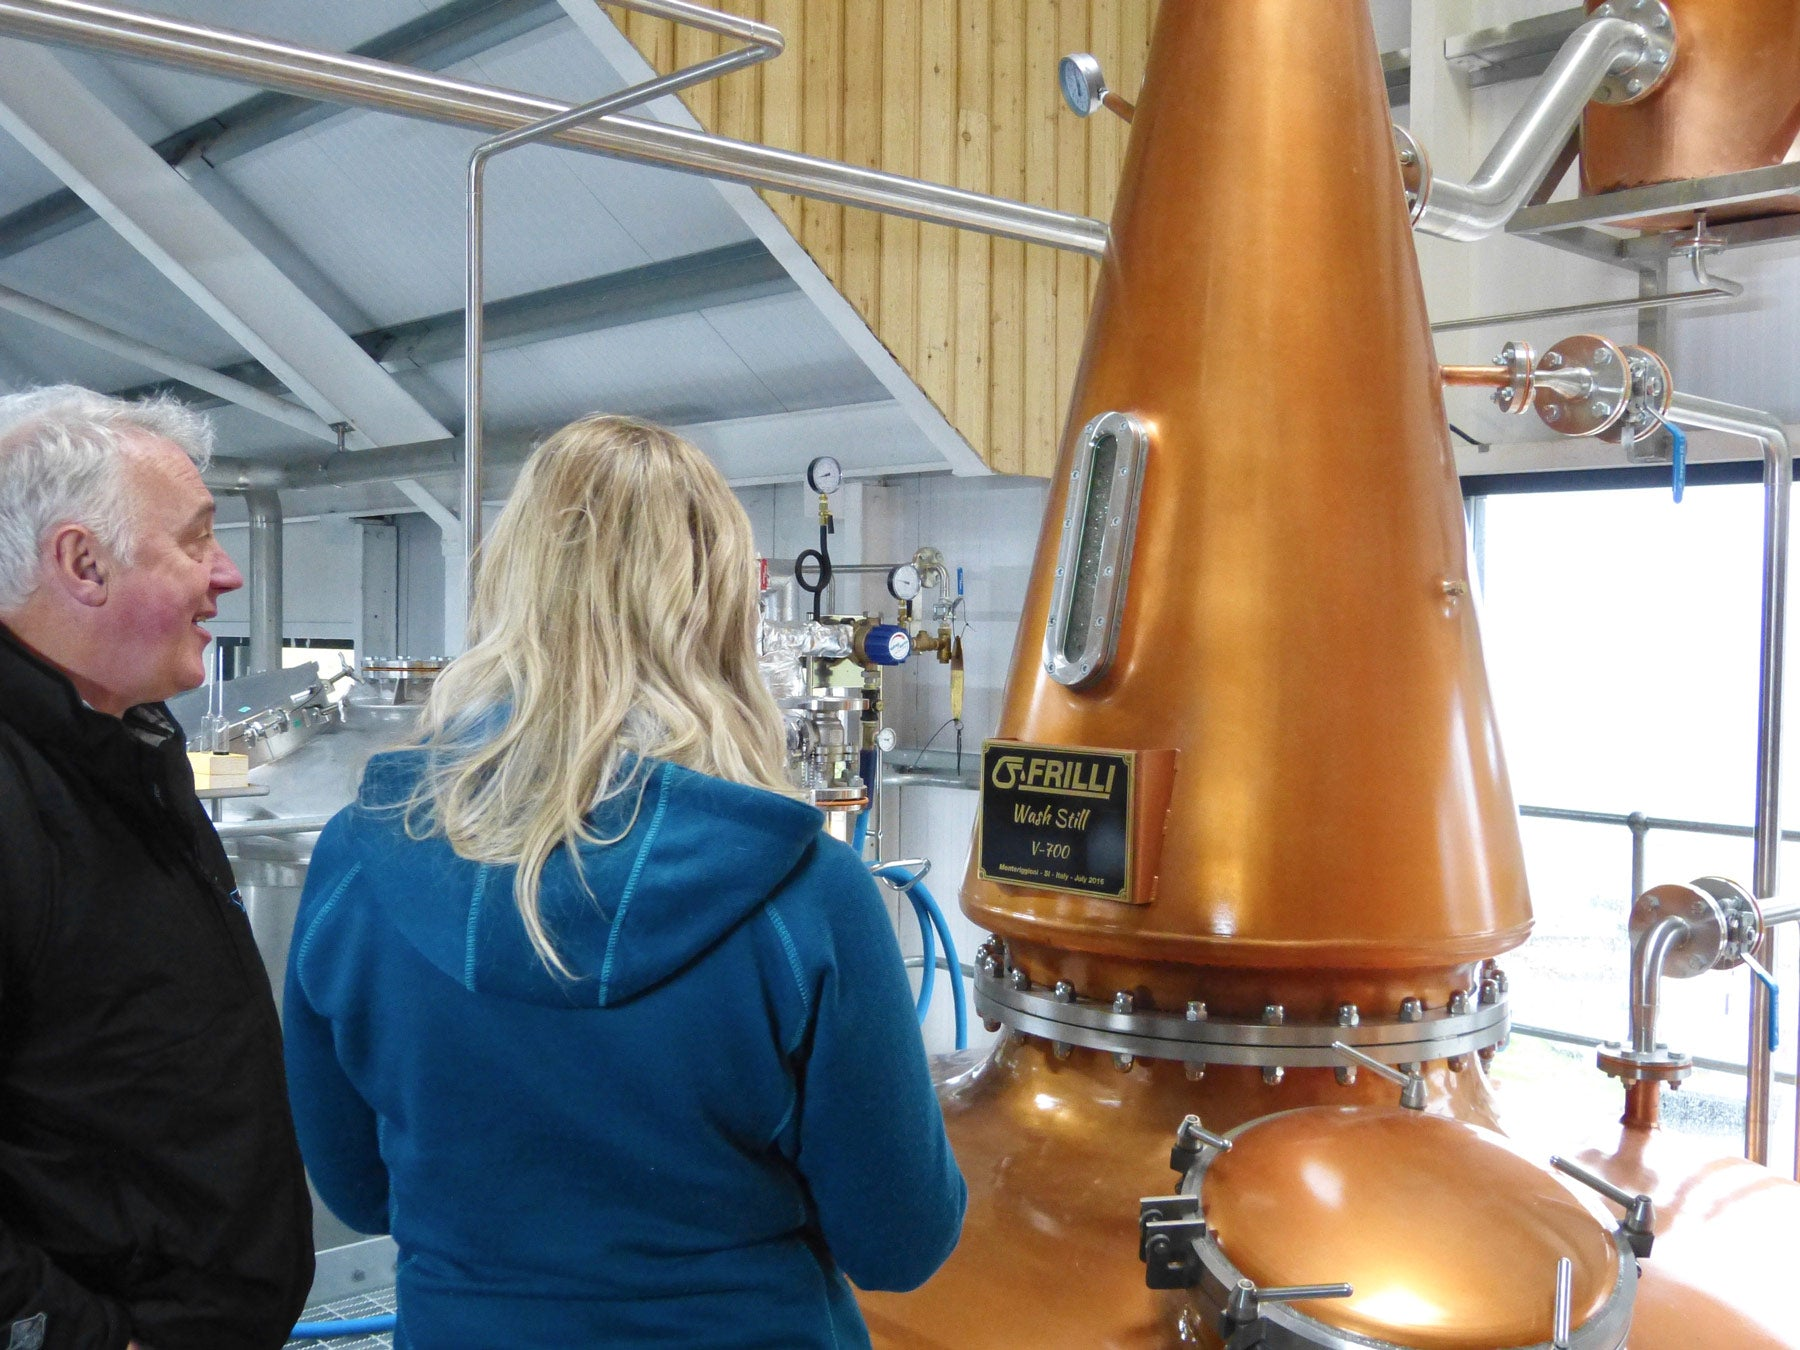 Jane Hunter Iain Hector Ross Isle of Raasay Distillery Tour